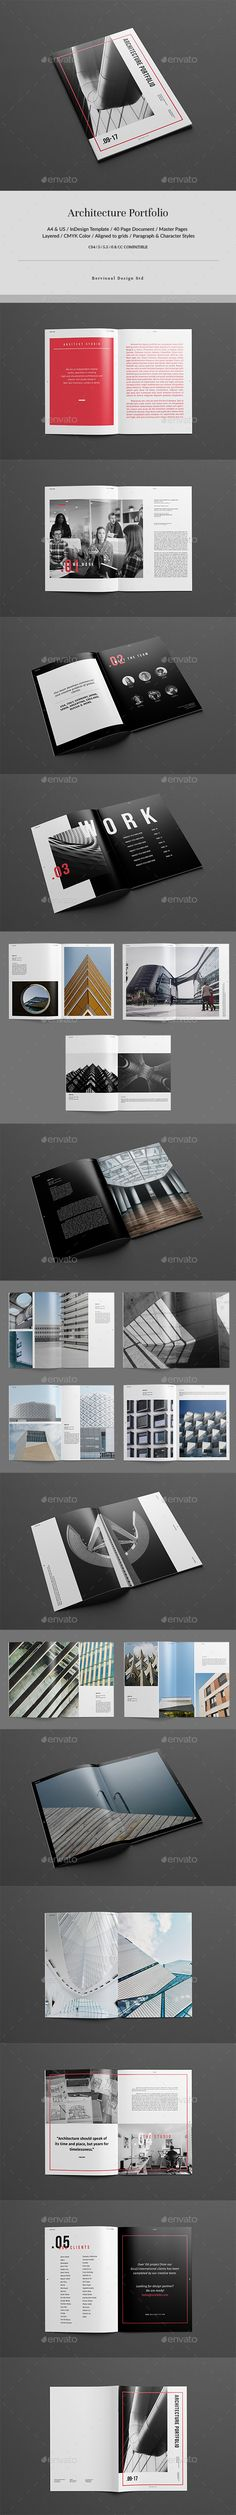 Architecture Portfolio Brochure Template InDesign INDD